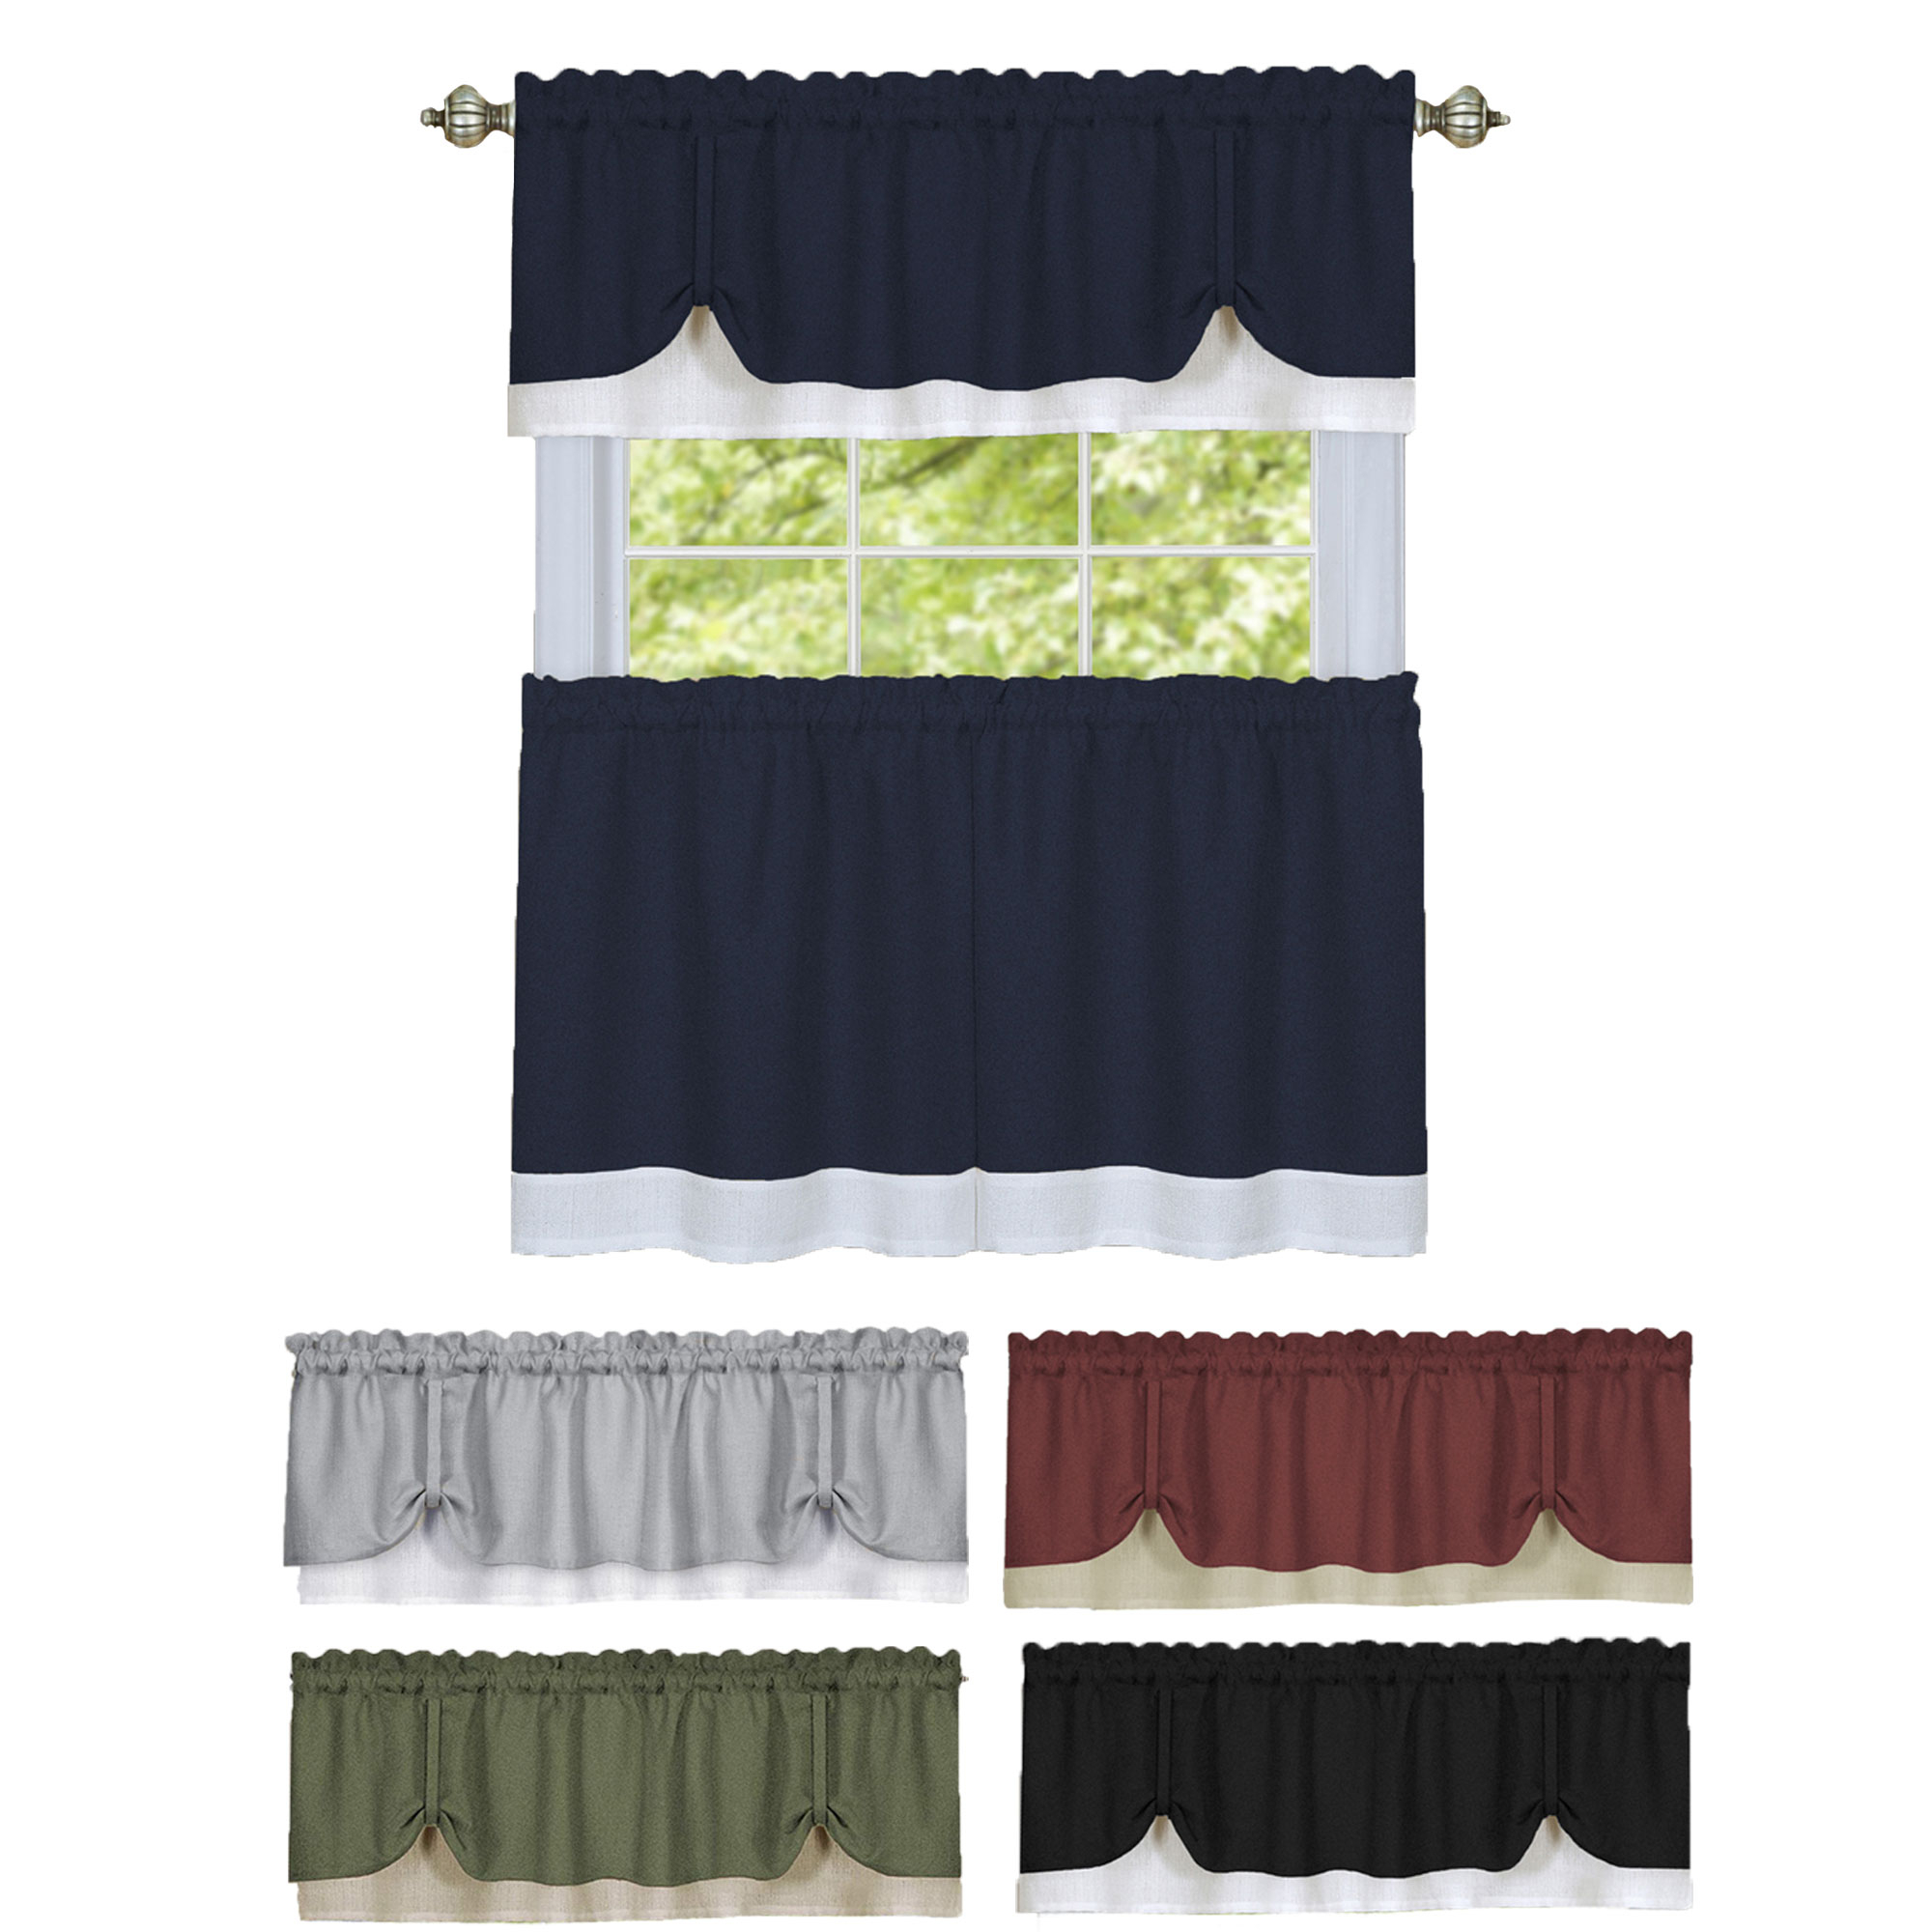 Details About Solid Window Curtain Double Layer Tier Pair & Valance Set For Preferred Traditional Two Piece Tailored Tier And Valance Window Curtains (View 13 of 20)